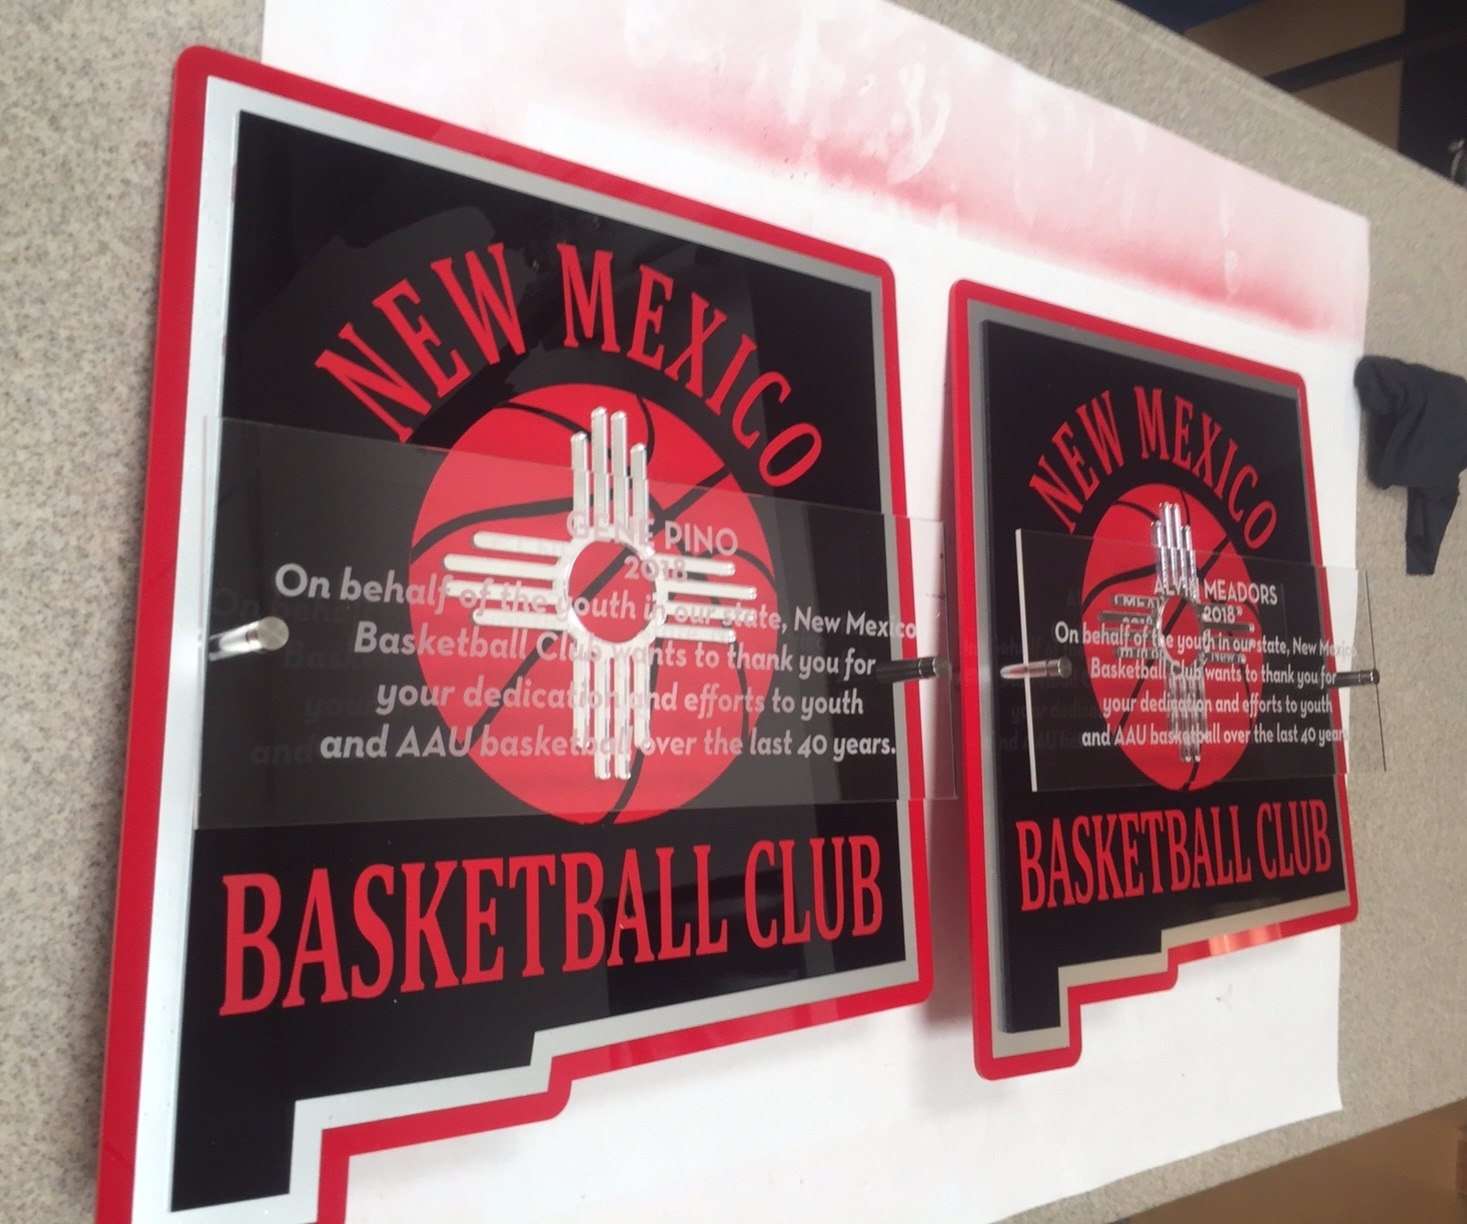 New Mexico Basketball Club - Appreciation Award  Contact us for pricing information.